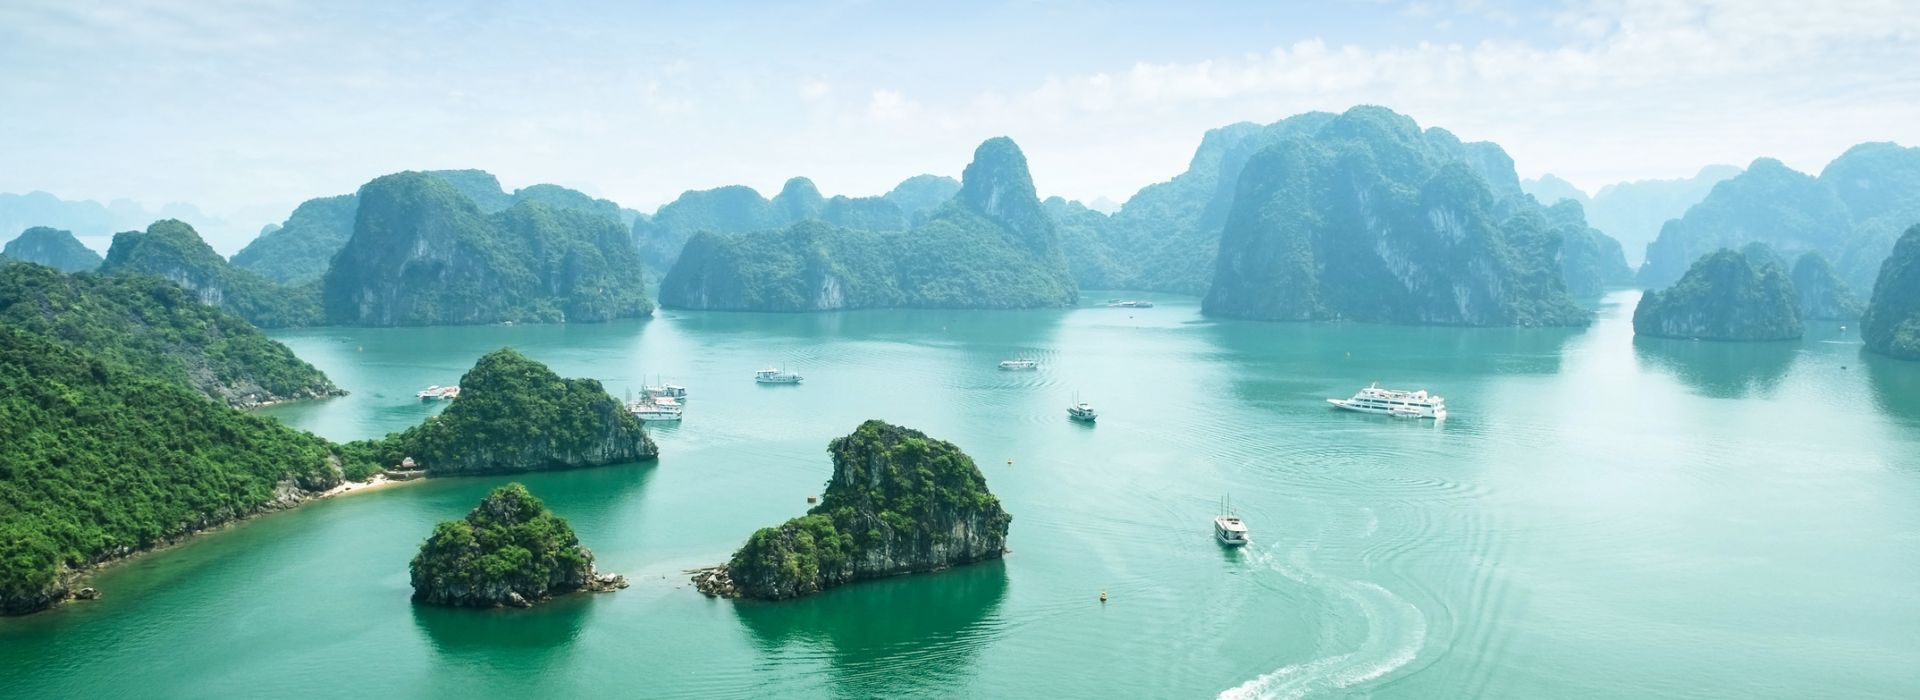 Countryside and village visits Tours in Da Nang